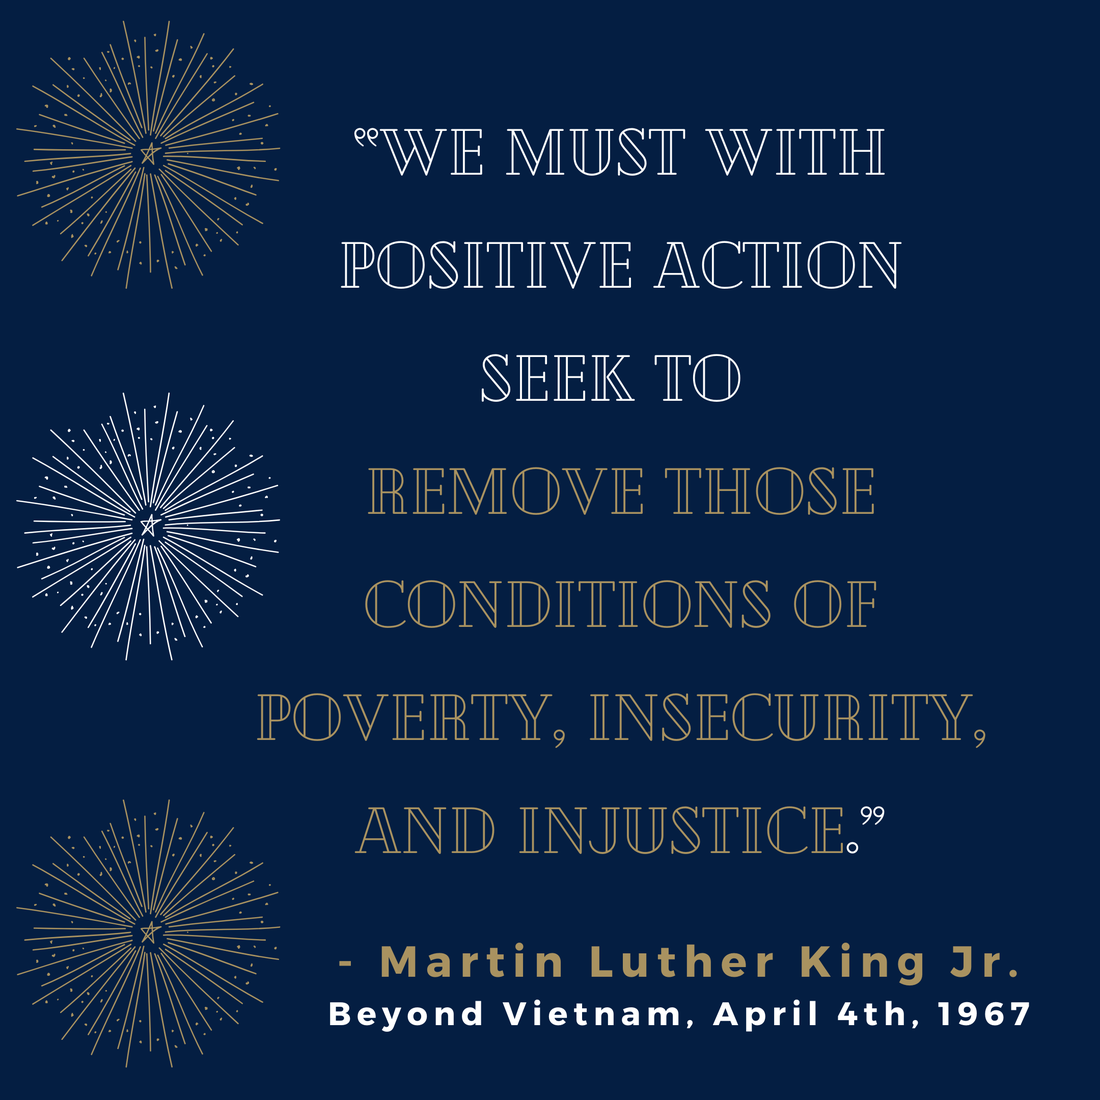 """""""We must with positive action seek to remove those conditions of poverty, insecurity, and injustice.""""  Martin Luther King Jr., Beyond Vietnam, April 4th, 1967"""